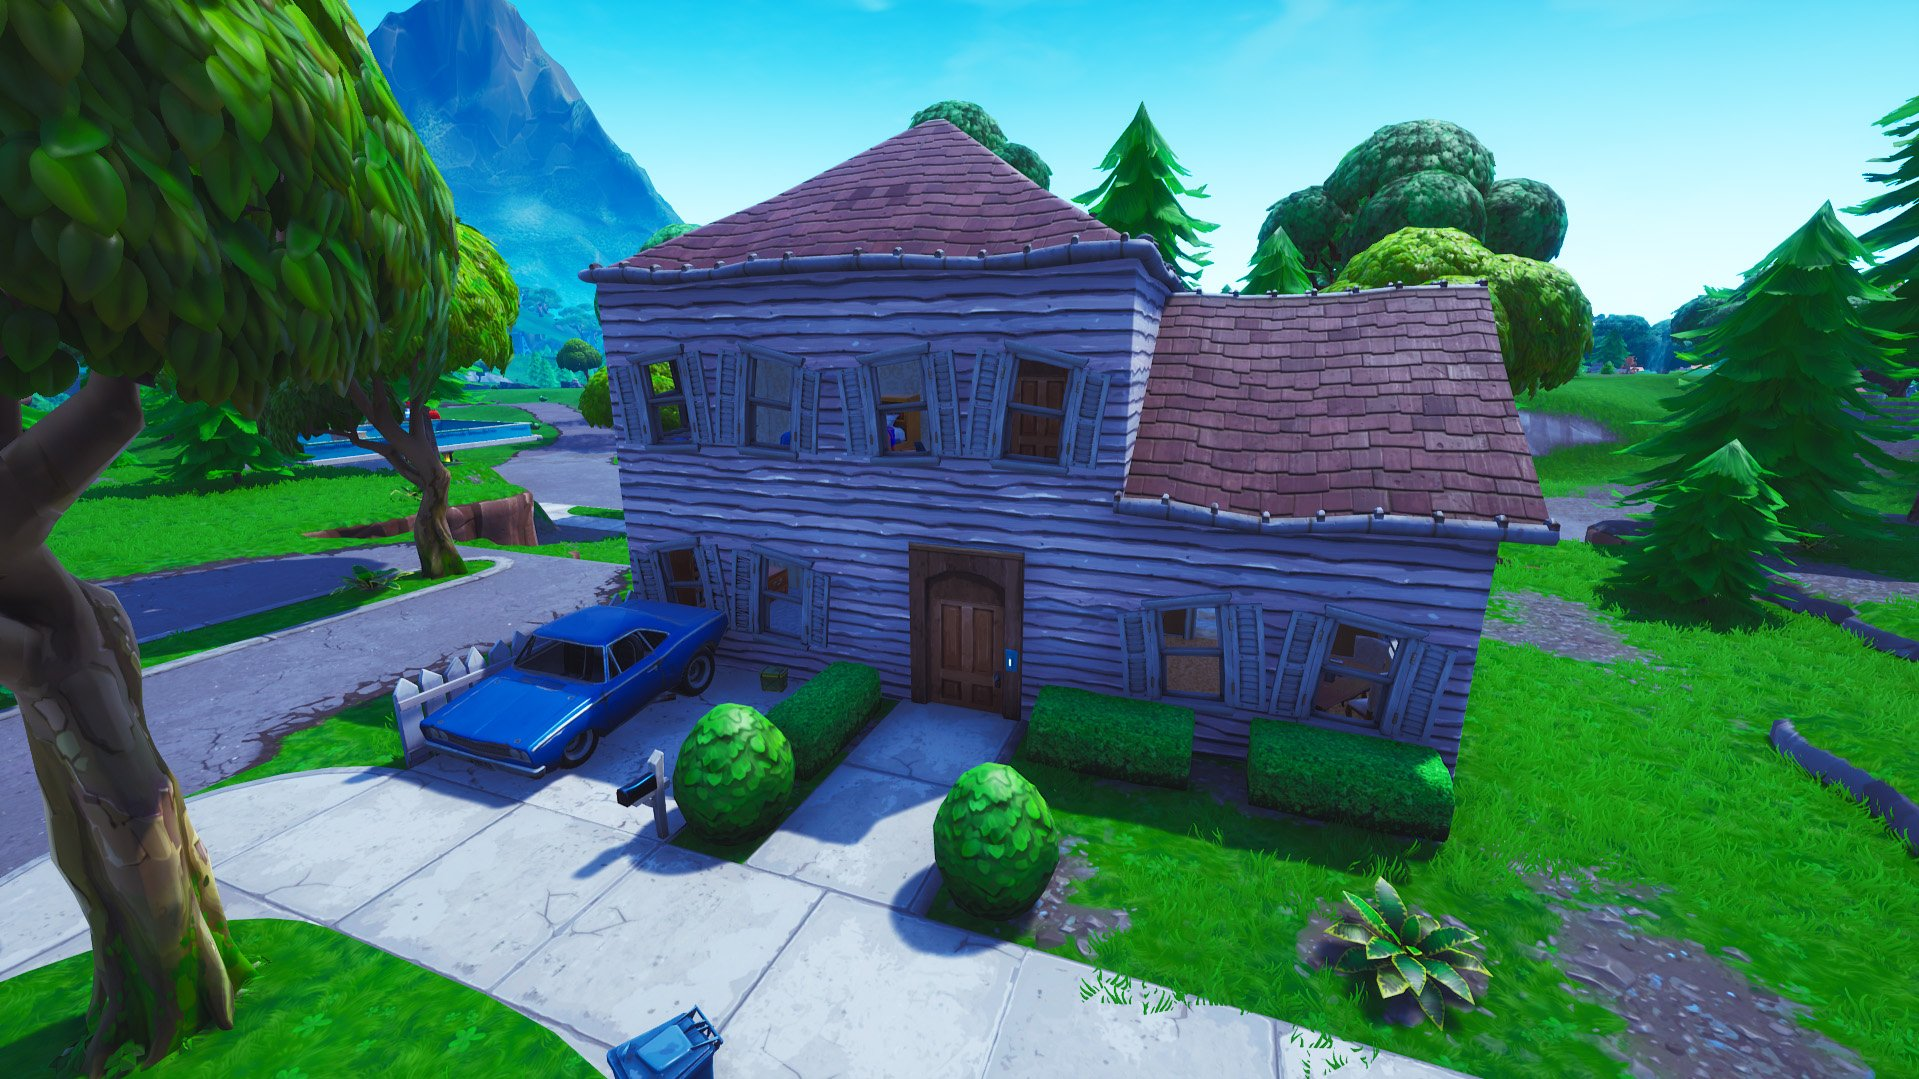 Fortnite Salty springs house redesign